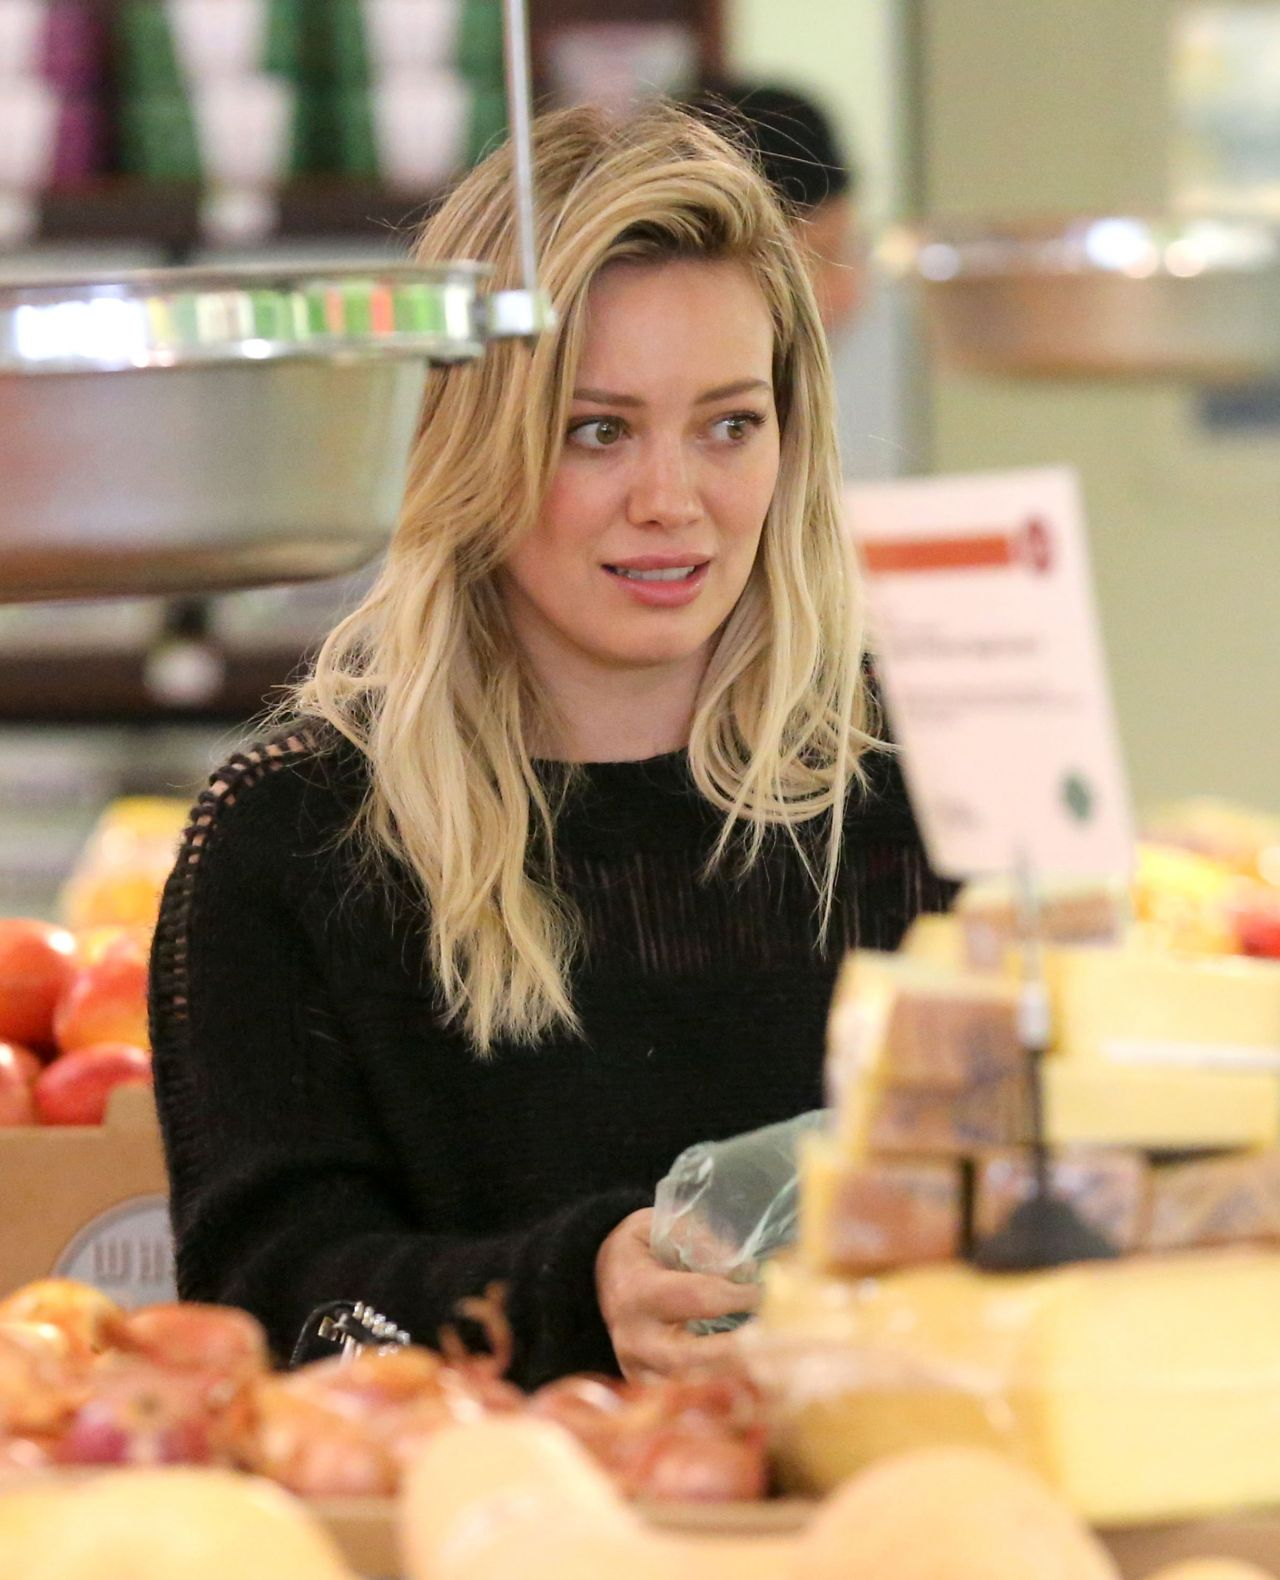 Hilary Duff  Street Style - Grocery Shopping in Los Angeles, Feb. 2015